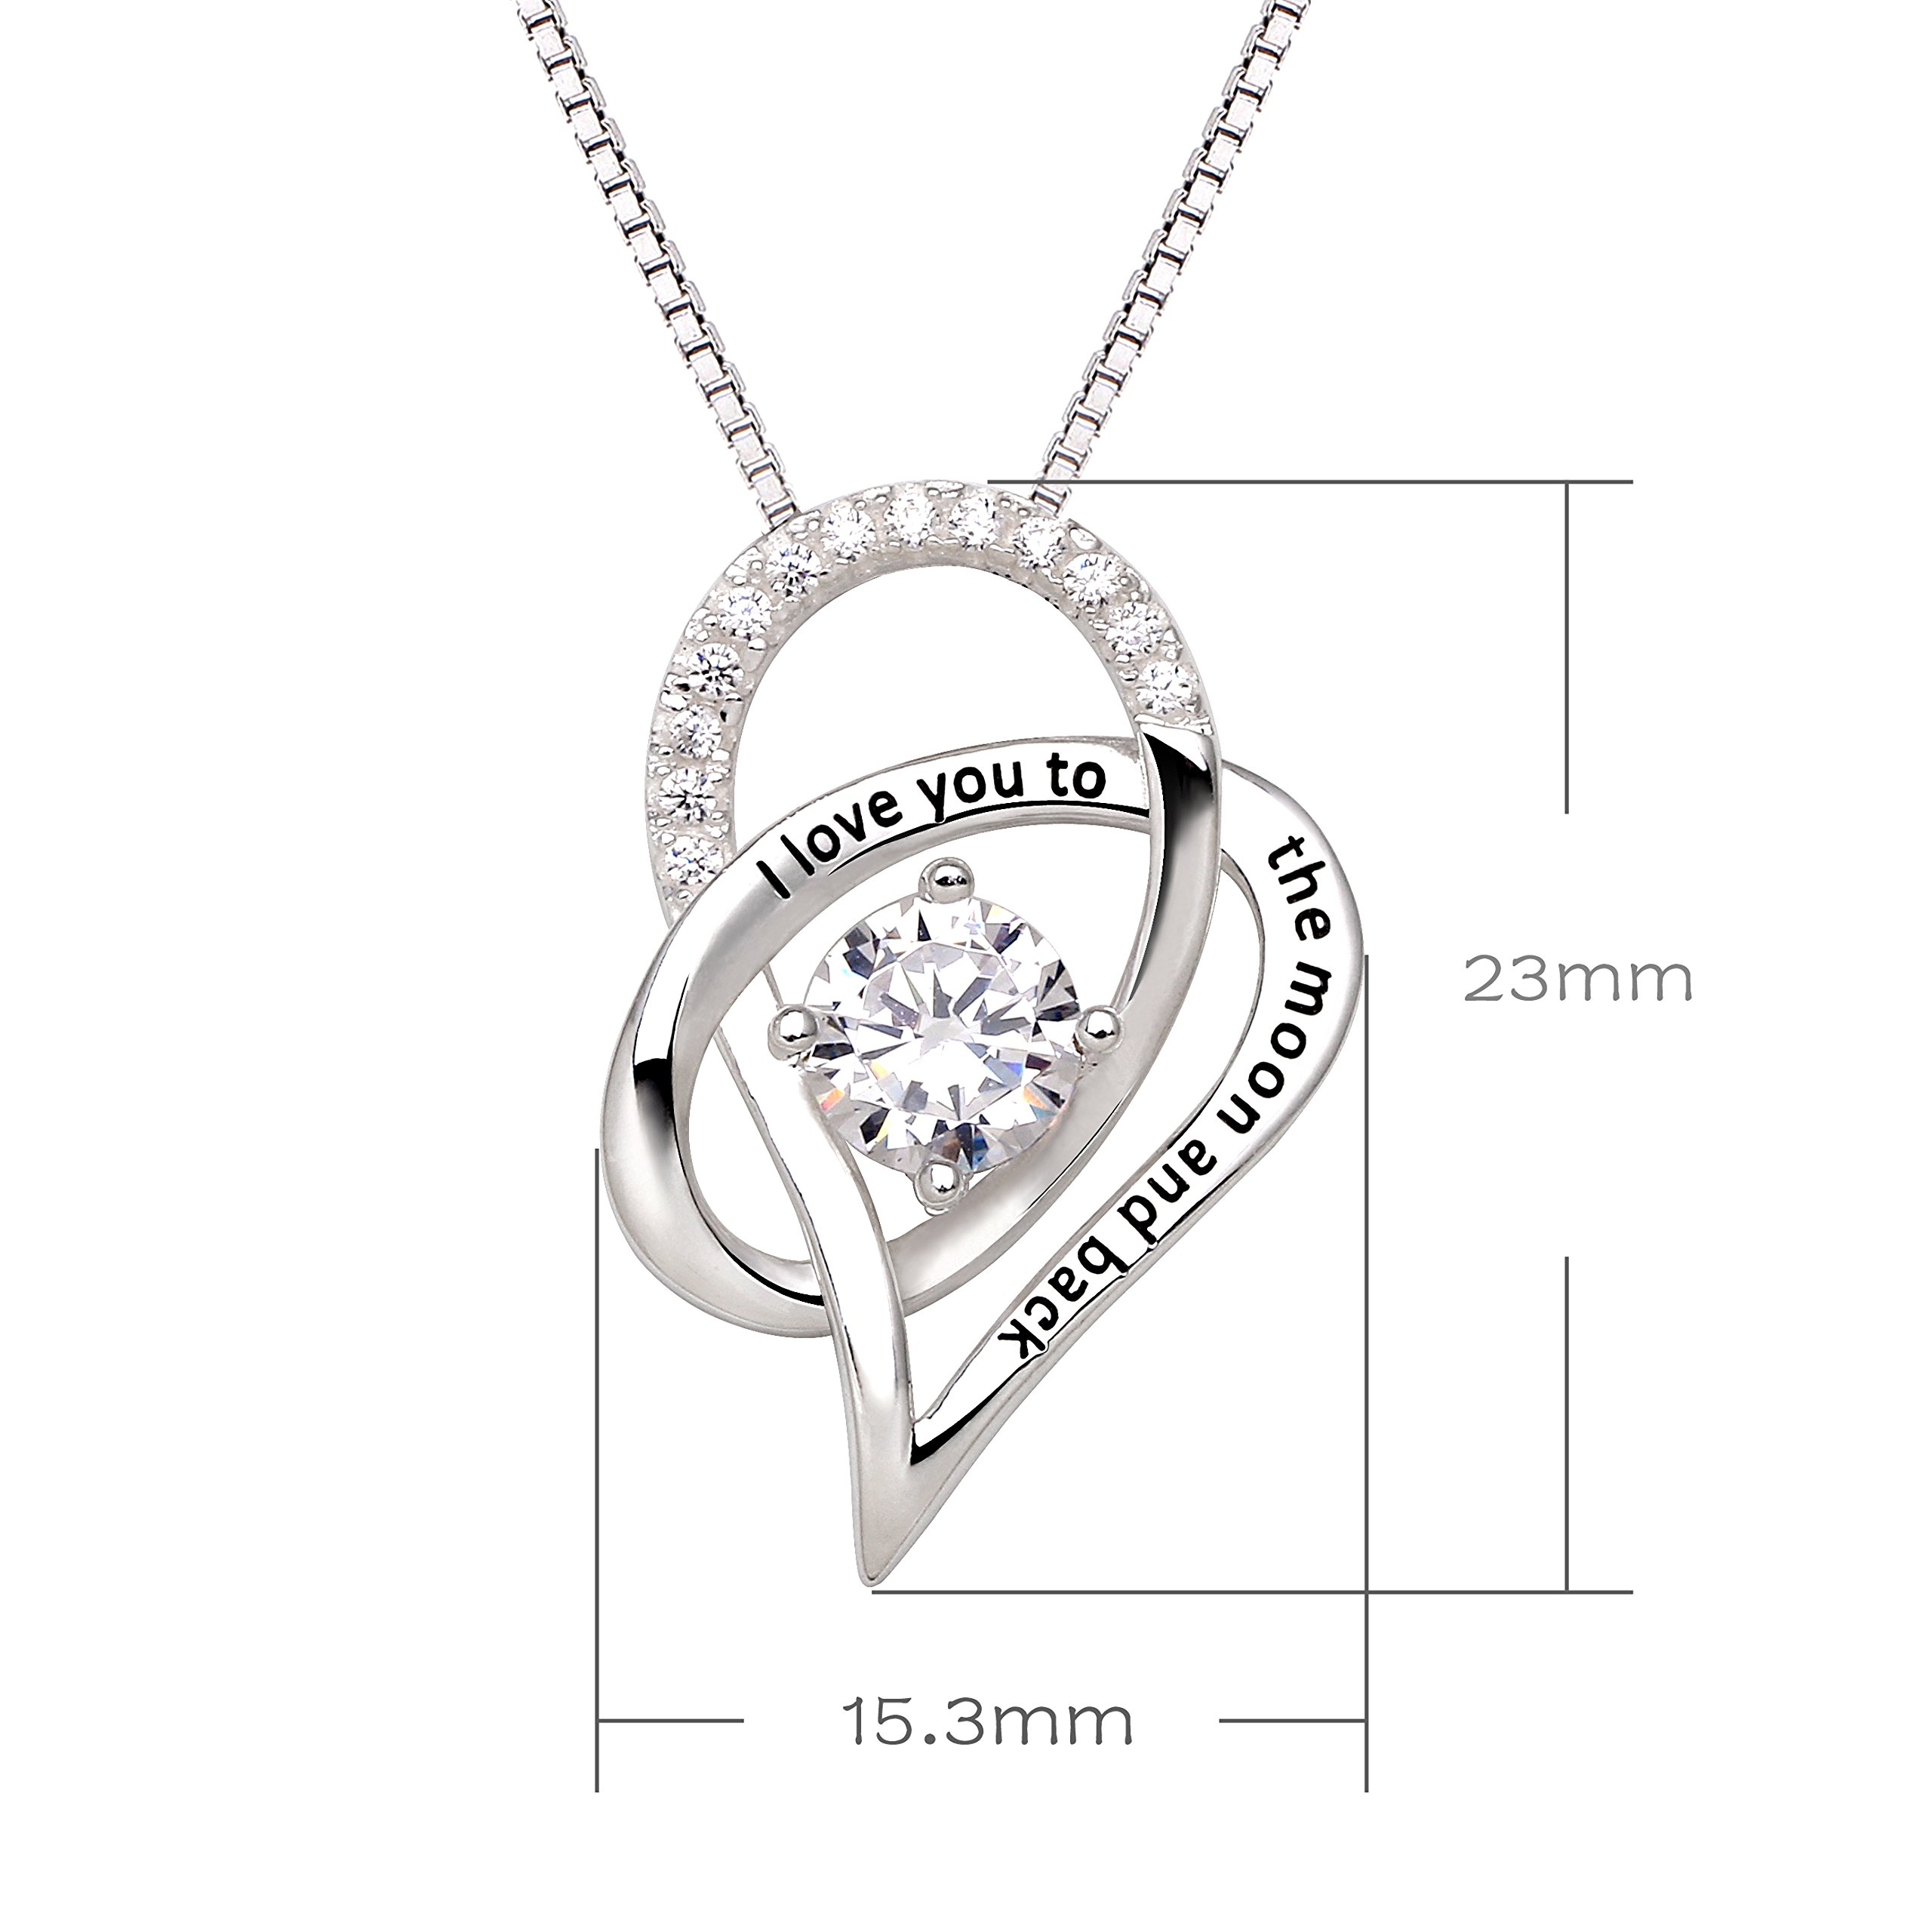 ALOV-Jewelry-Sterling-Silver-I-Love-You-To-The-Moon-and-Back-Love-Heart-Cubic-Zirconia-Pendant-Necklace